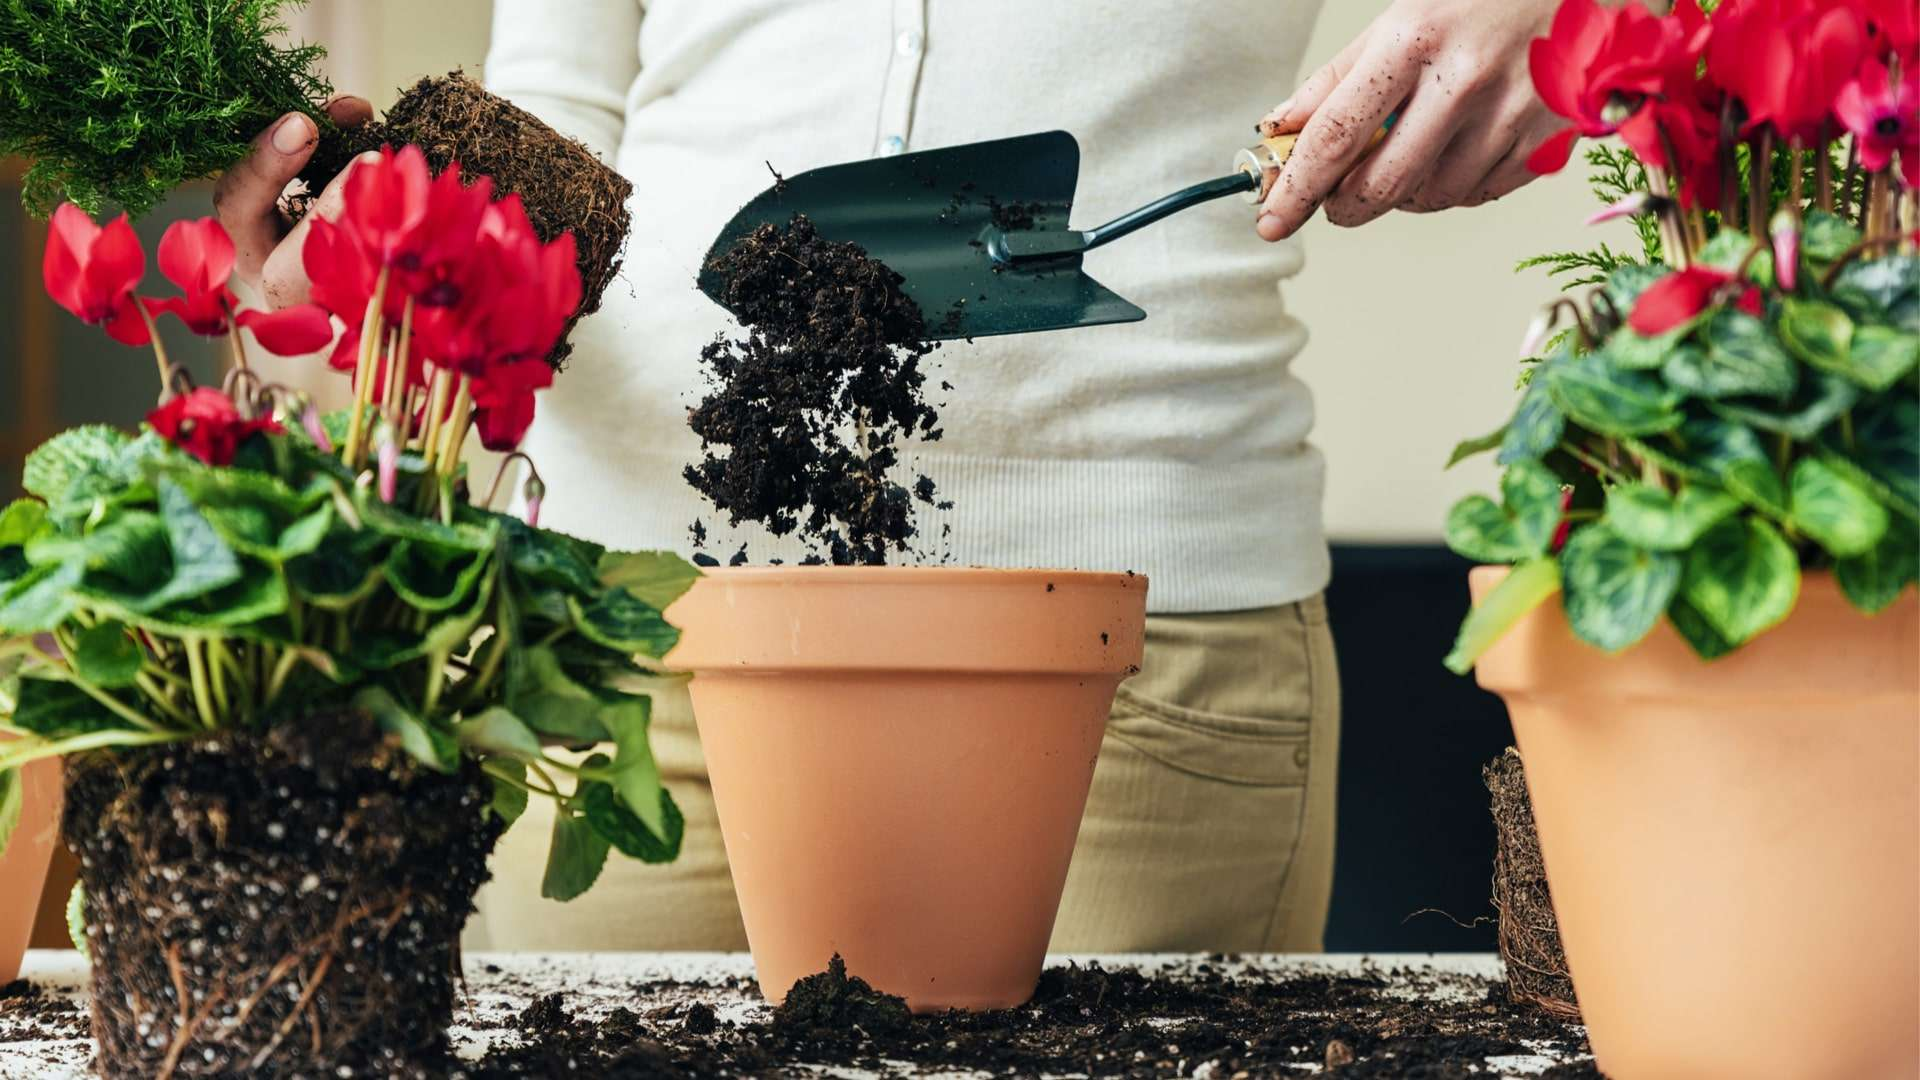 How To Fertilize Plants